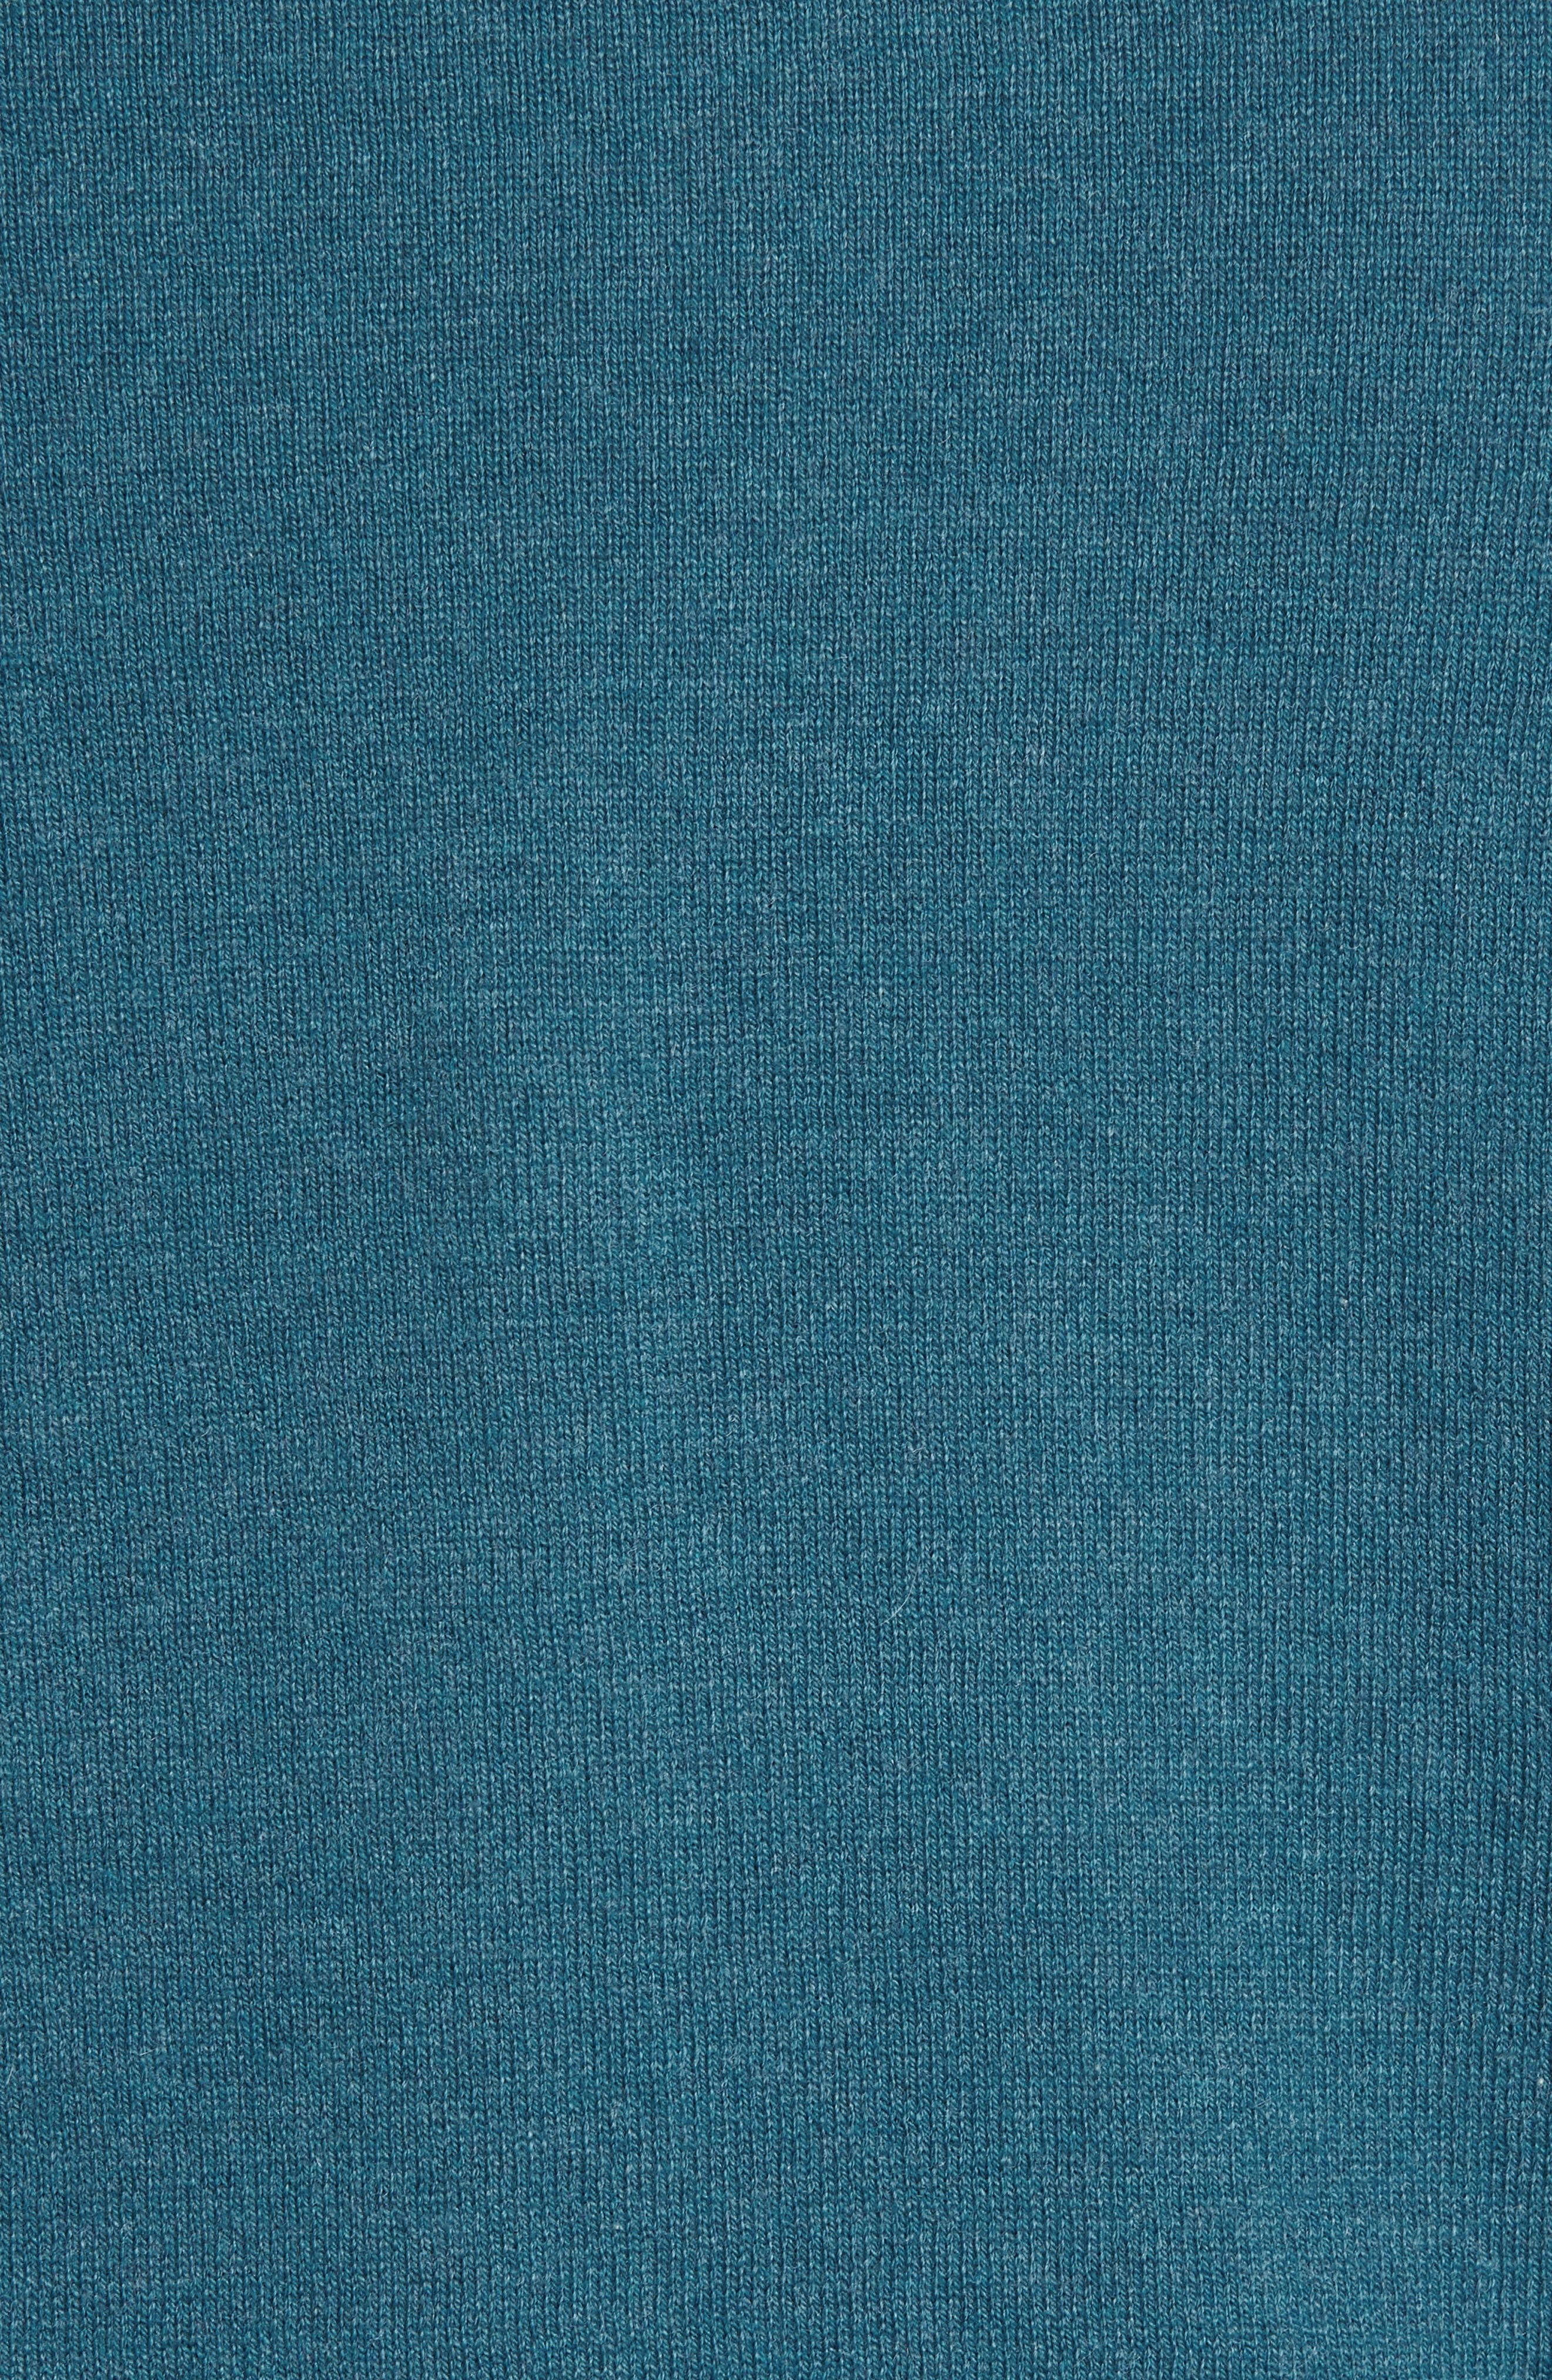 Half Zip Cotton & Cashmere Pullover,                             Alternate thumbnail 5, color,                             Teal Moroccan